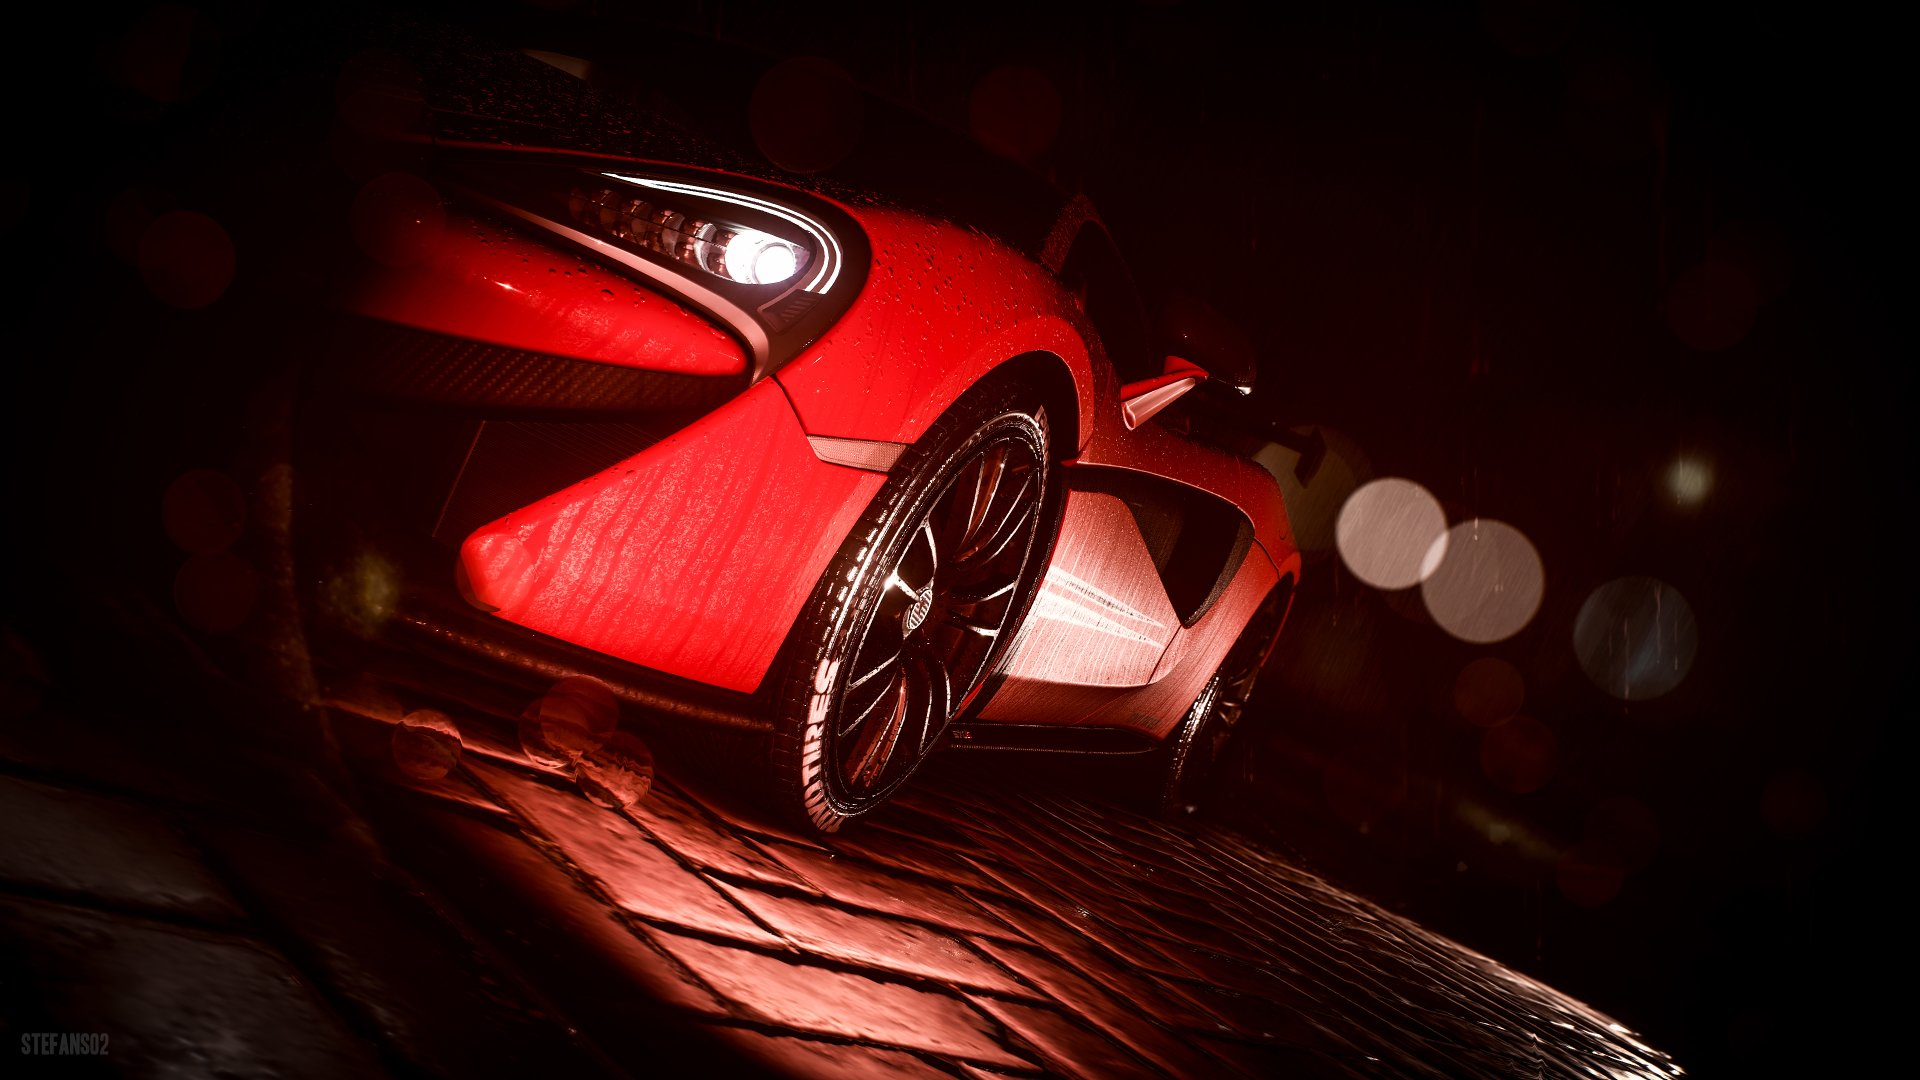 Epic game need for speed wallpapers for desctop - Speed wallpaper ...